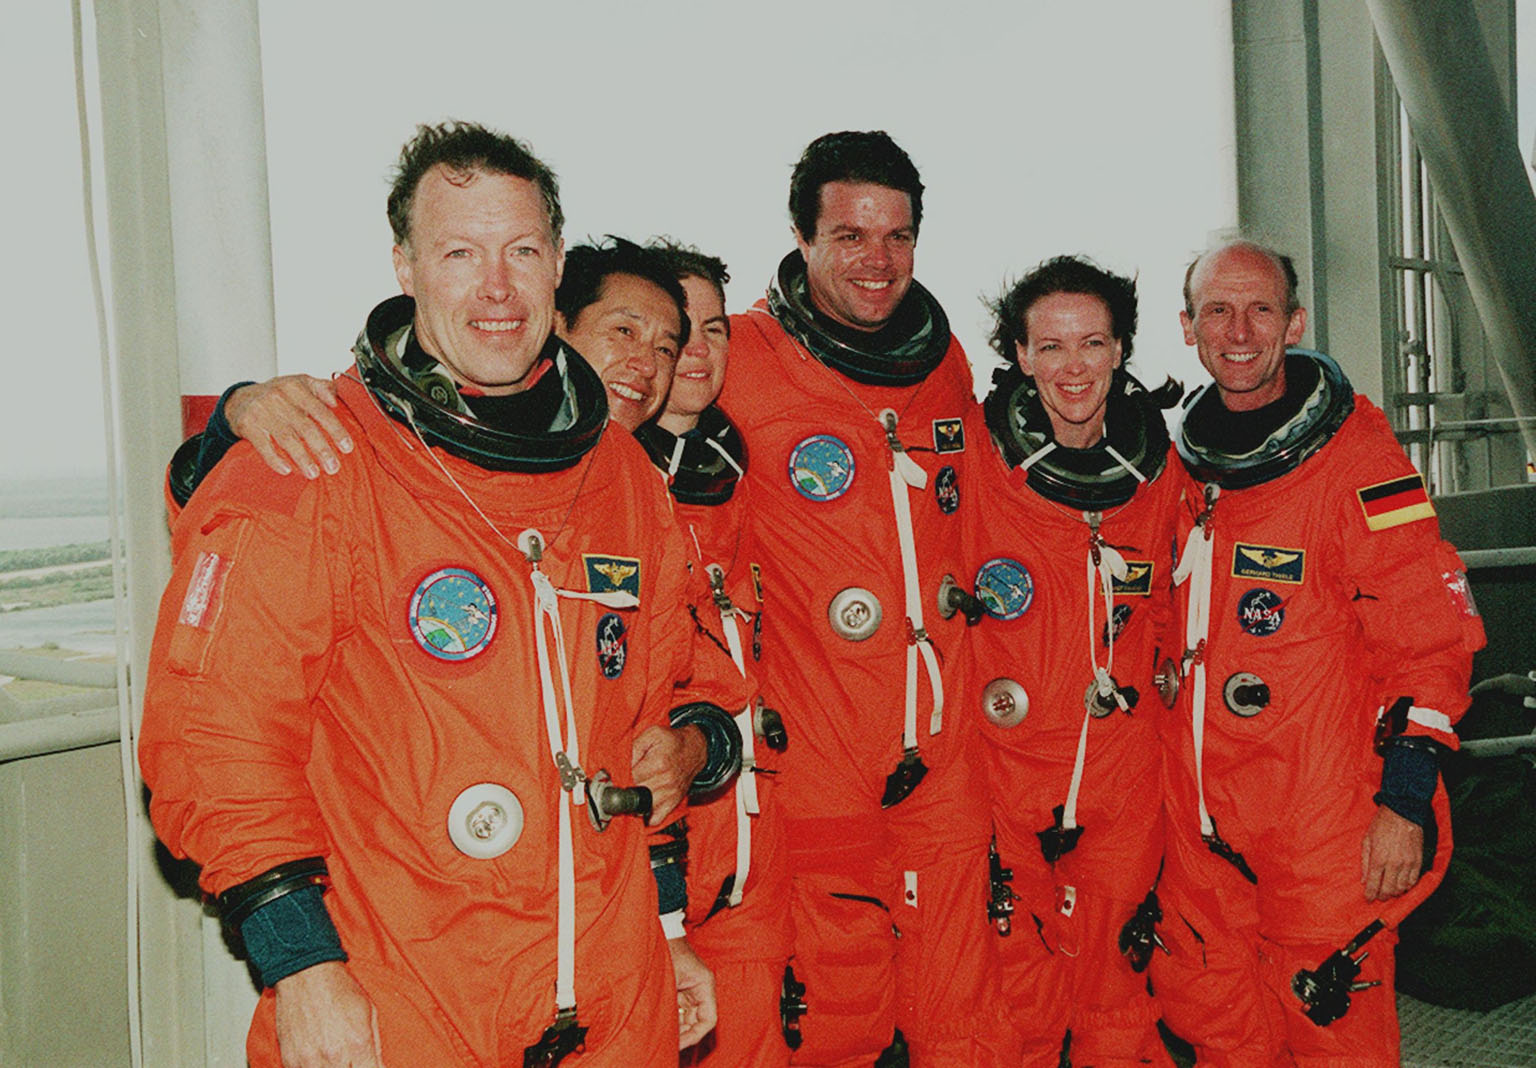 KENNEDY SPACE CENTER, Fla. -- At the 195-foot level of the Fixed Service Structure on Launch Pad 39A, the STS-99 crew pose for a photograph during Terminal Countdown Demonstration Test (TCDT) activities. Standing left to right are Pilot Dominic Gorie, Mission Specialist Mamoru Mohri (Ph.D.), Mission Specialist Janice Voss (Ph.D.), Commander Kevin Kregel, Mission Specialist Janet Lynn Kavandi (Ph.D.), and Mission Specialist Gerhard Thiele (Ph.D.). Thiele is with the European Space Agency and Mohri is with the National Space Development Agency (NASDA) of Japan. The TCDT provides the crew with simulated countdown exercises, emergency egress training, and opportunities to inspect the mission payloads in the orbiter's payload bay. STS-99 is the Shuttle Radar Topography Mission, which will chart a new course, using two antennae and a 200-foot-long section of space station-derived mast protruding from the payload bay to produce unrivaled 3-D images of the Earth's surface. The result of the Shuttle Radar Topography Mission could be close to 1 trillion measurements of the Earth's topography. Besides contributing to the production of better maps, these measurements could lead to improved water drainage modeling, more realistic flight simulators, better locations for cell phone towers, and enhanced navigation safety. Launch of Endeavour on the 11-day mission is scheduled for Jan. 31 at 12:47 p.m. EST